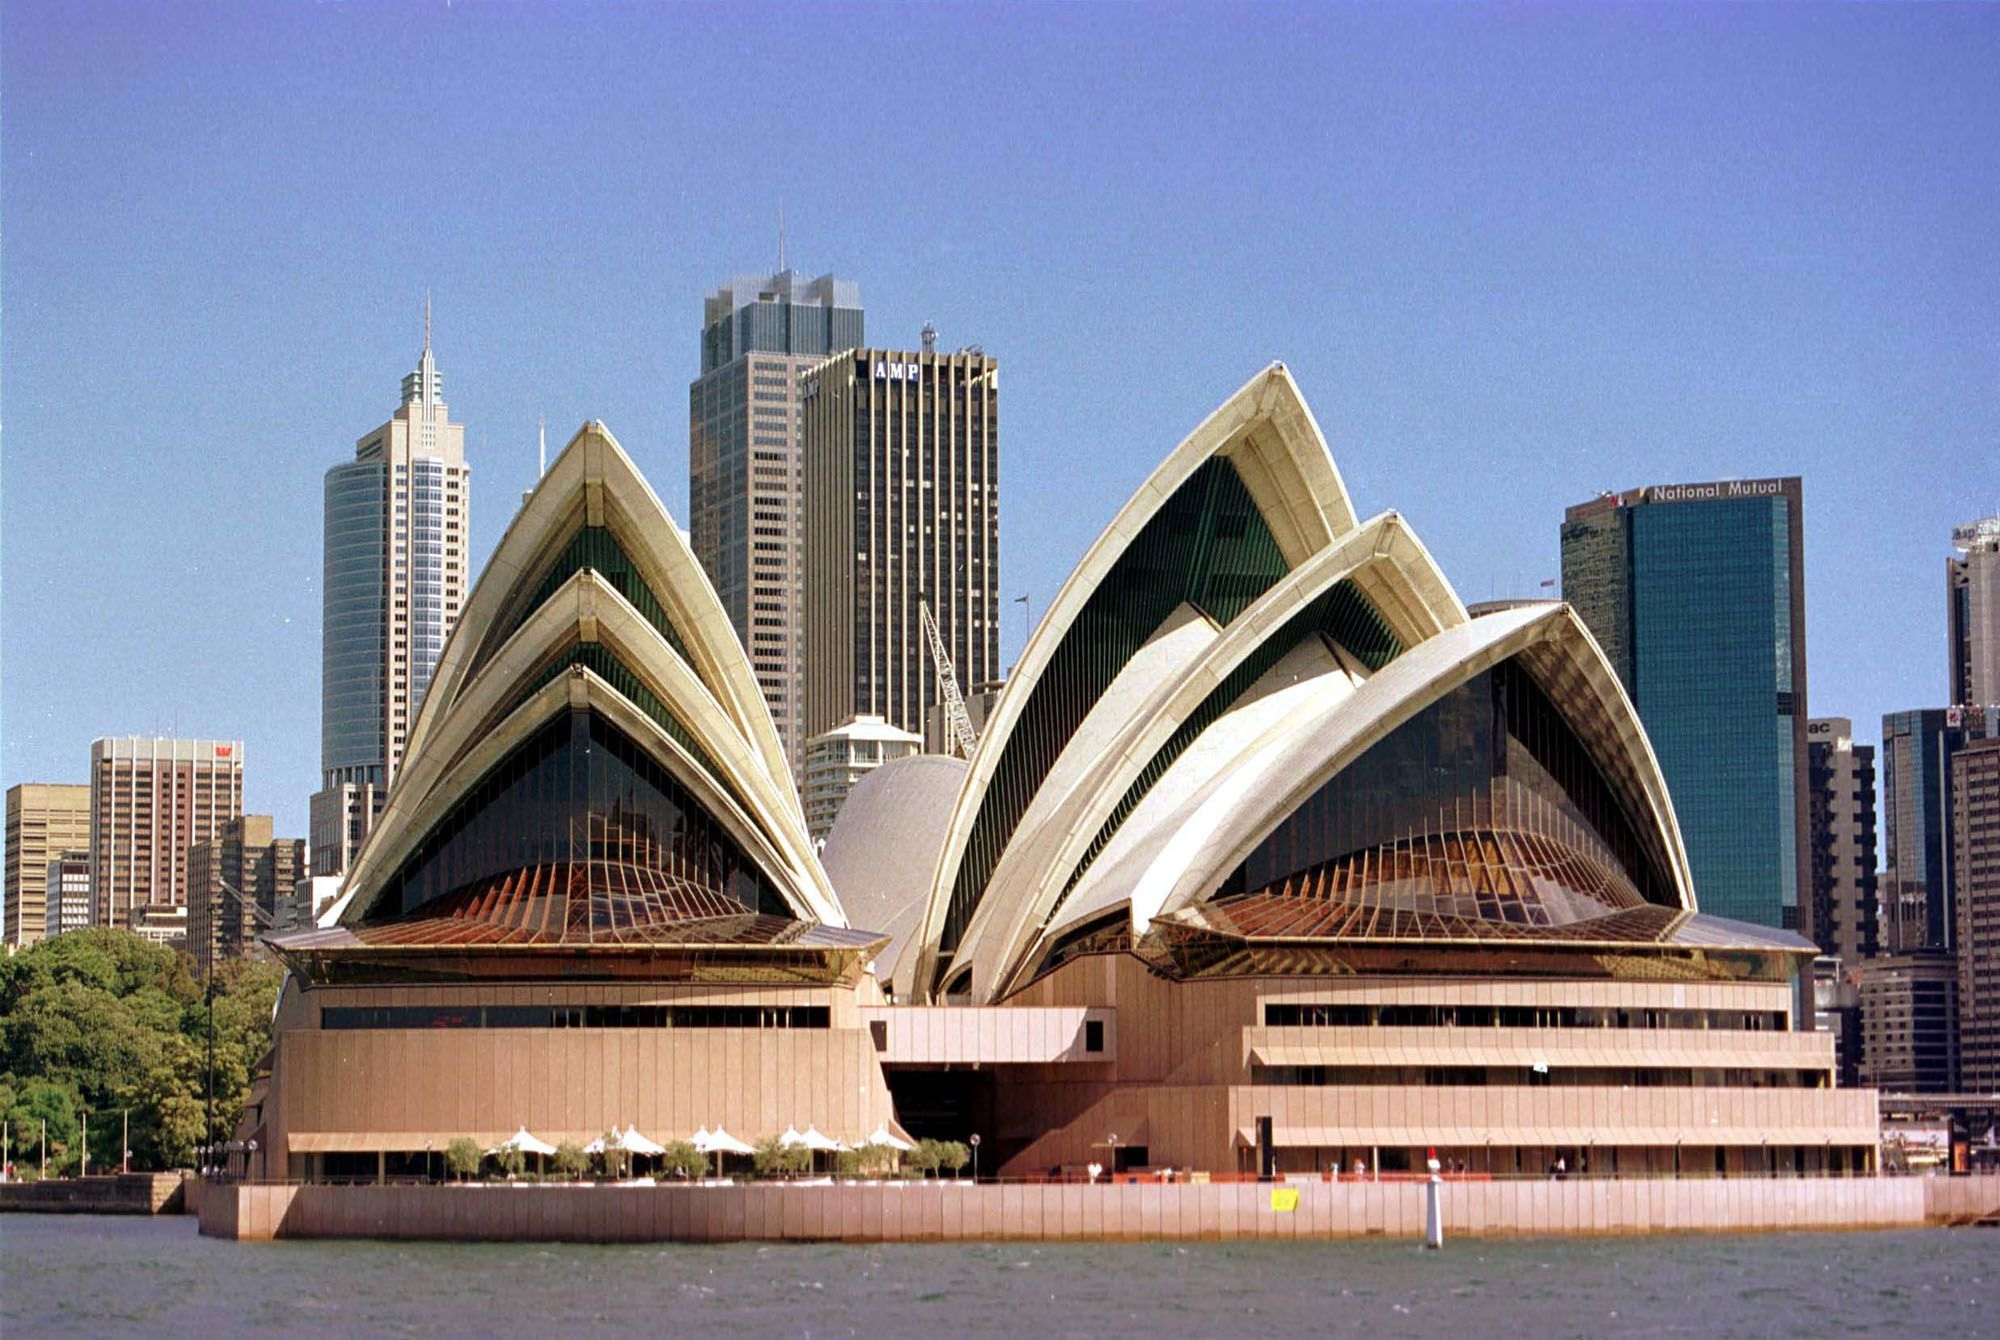 utzonSOH 821907 56aadd173df78cf772b49827 - Get Where To Take Photos Of Sydney Opera House Background